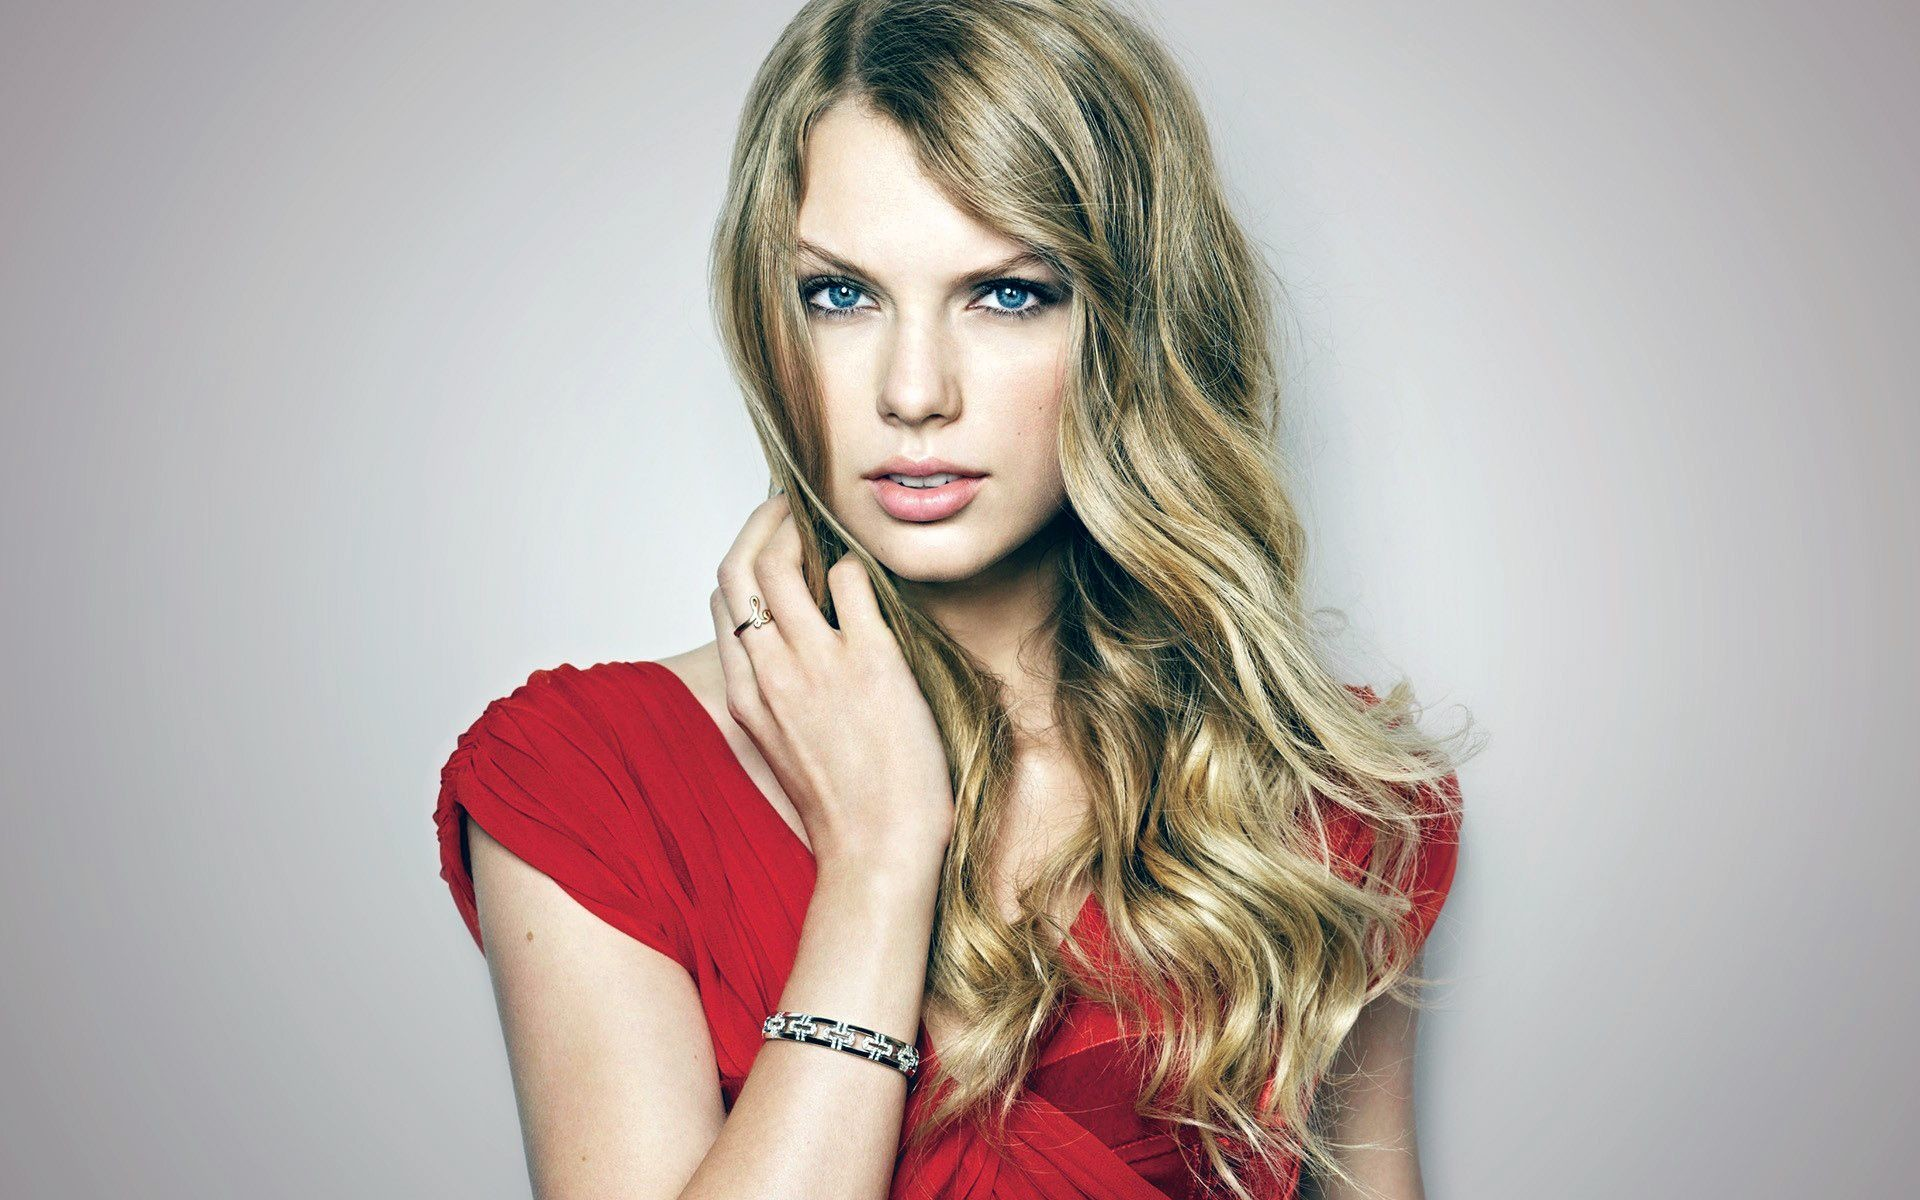 Taylor Swift Hd 2018 Wallpapers 70 Images